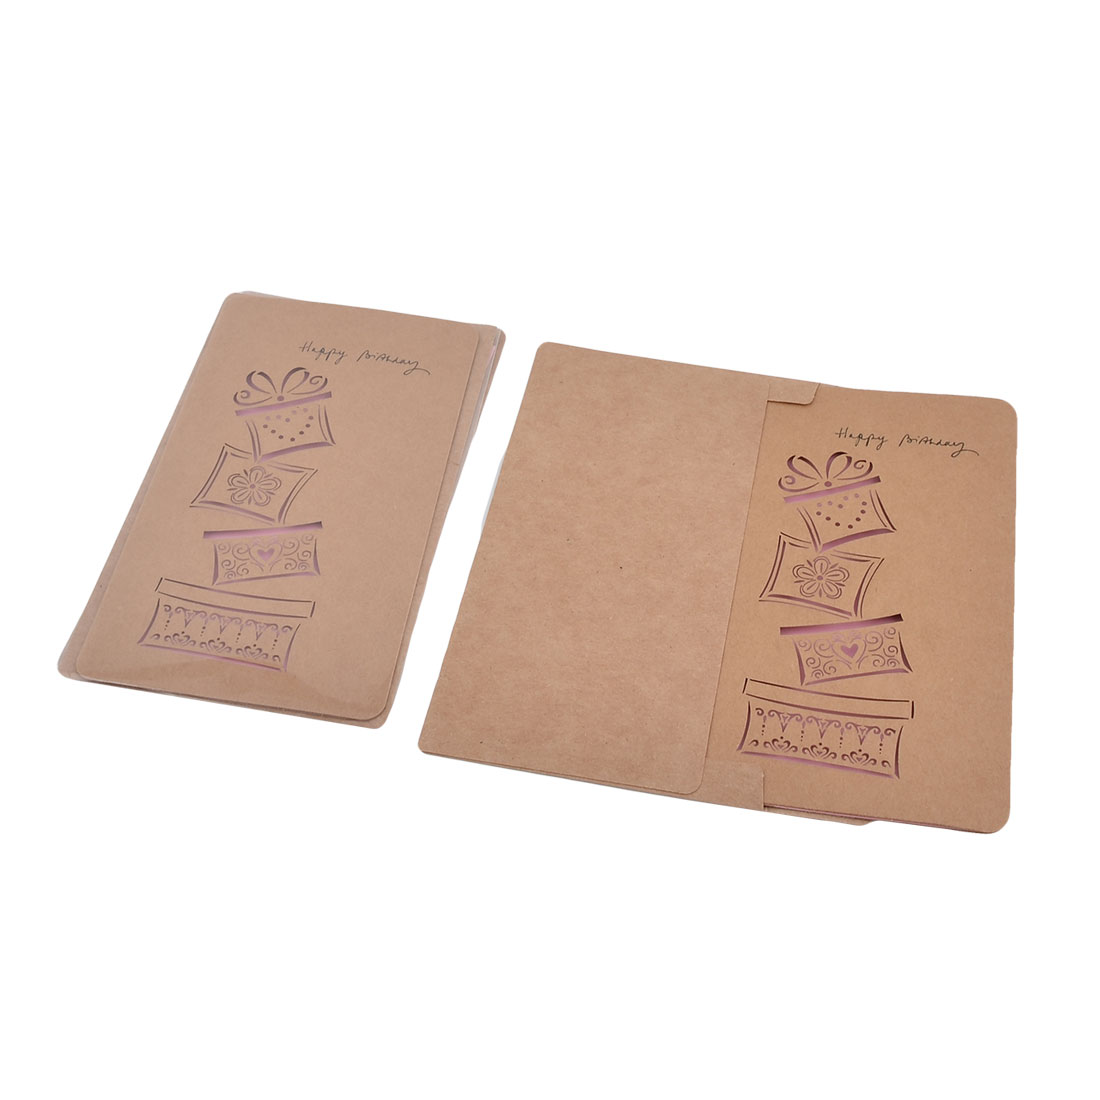 Christmas Wedding Kraft Paper Gift Box Pattern Hollow Out Design Invitation Greeting Card 3 Sets